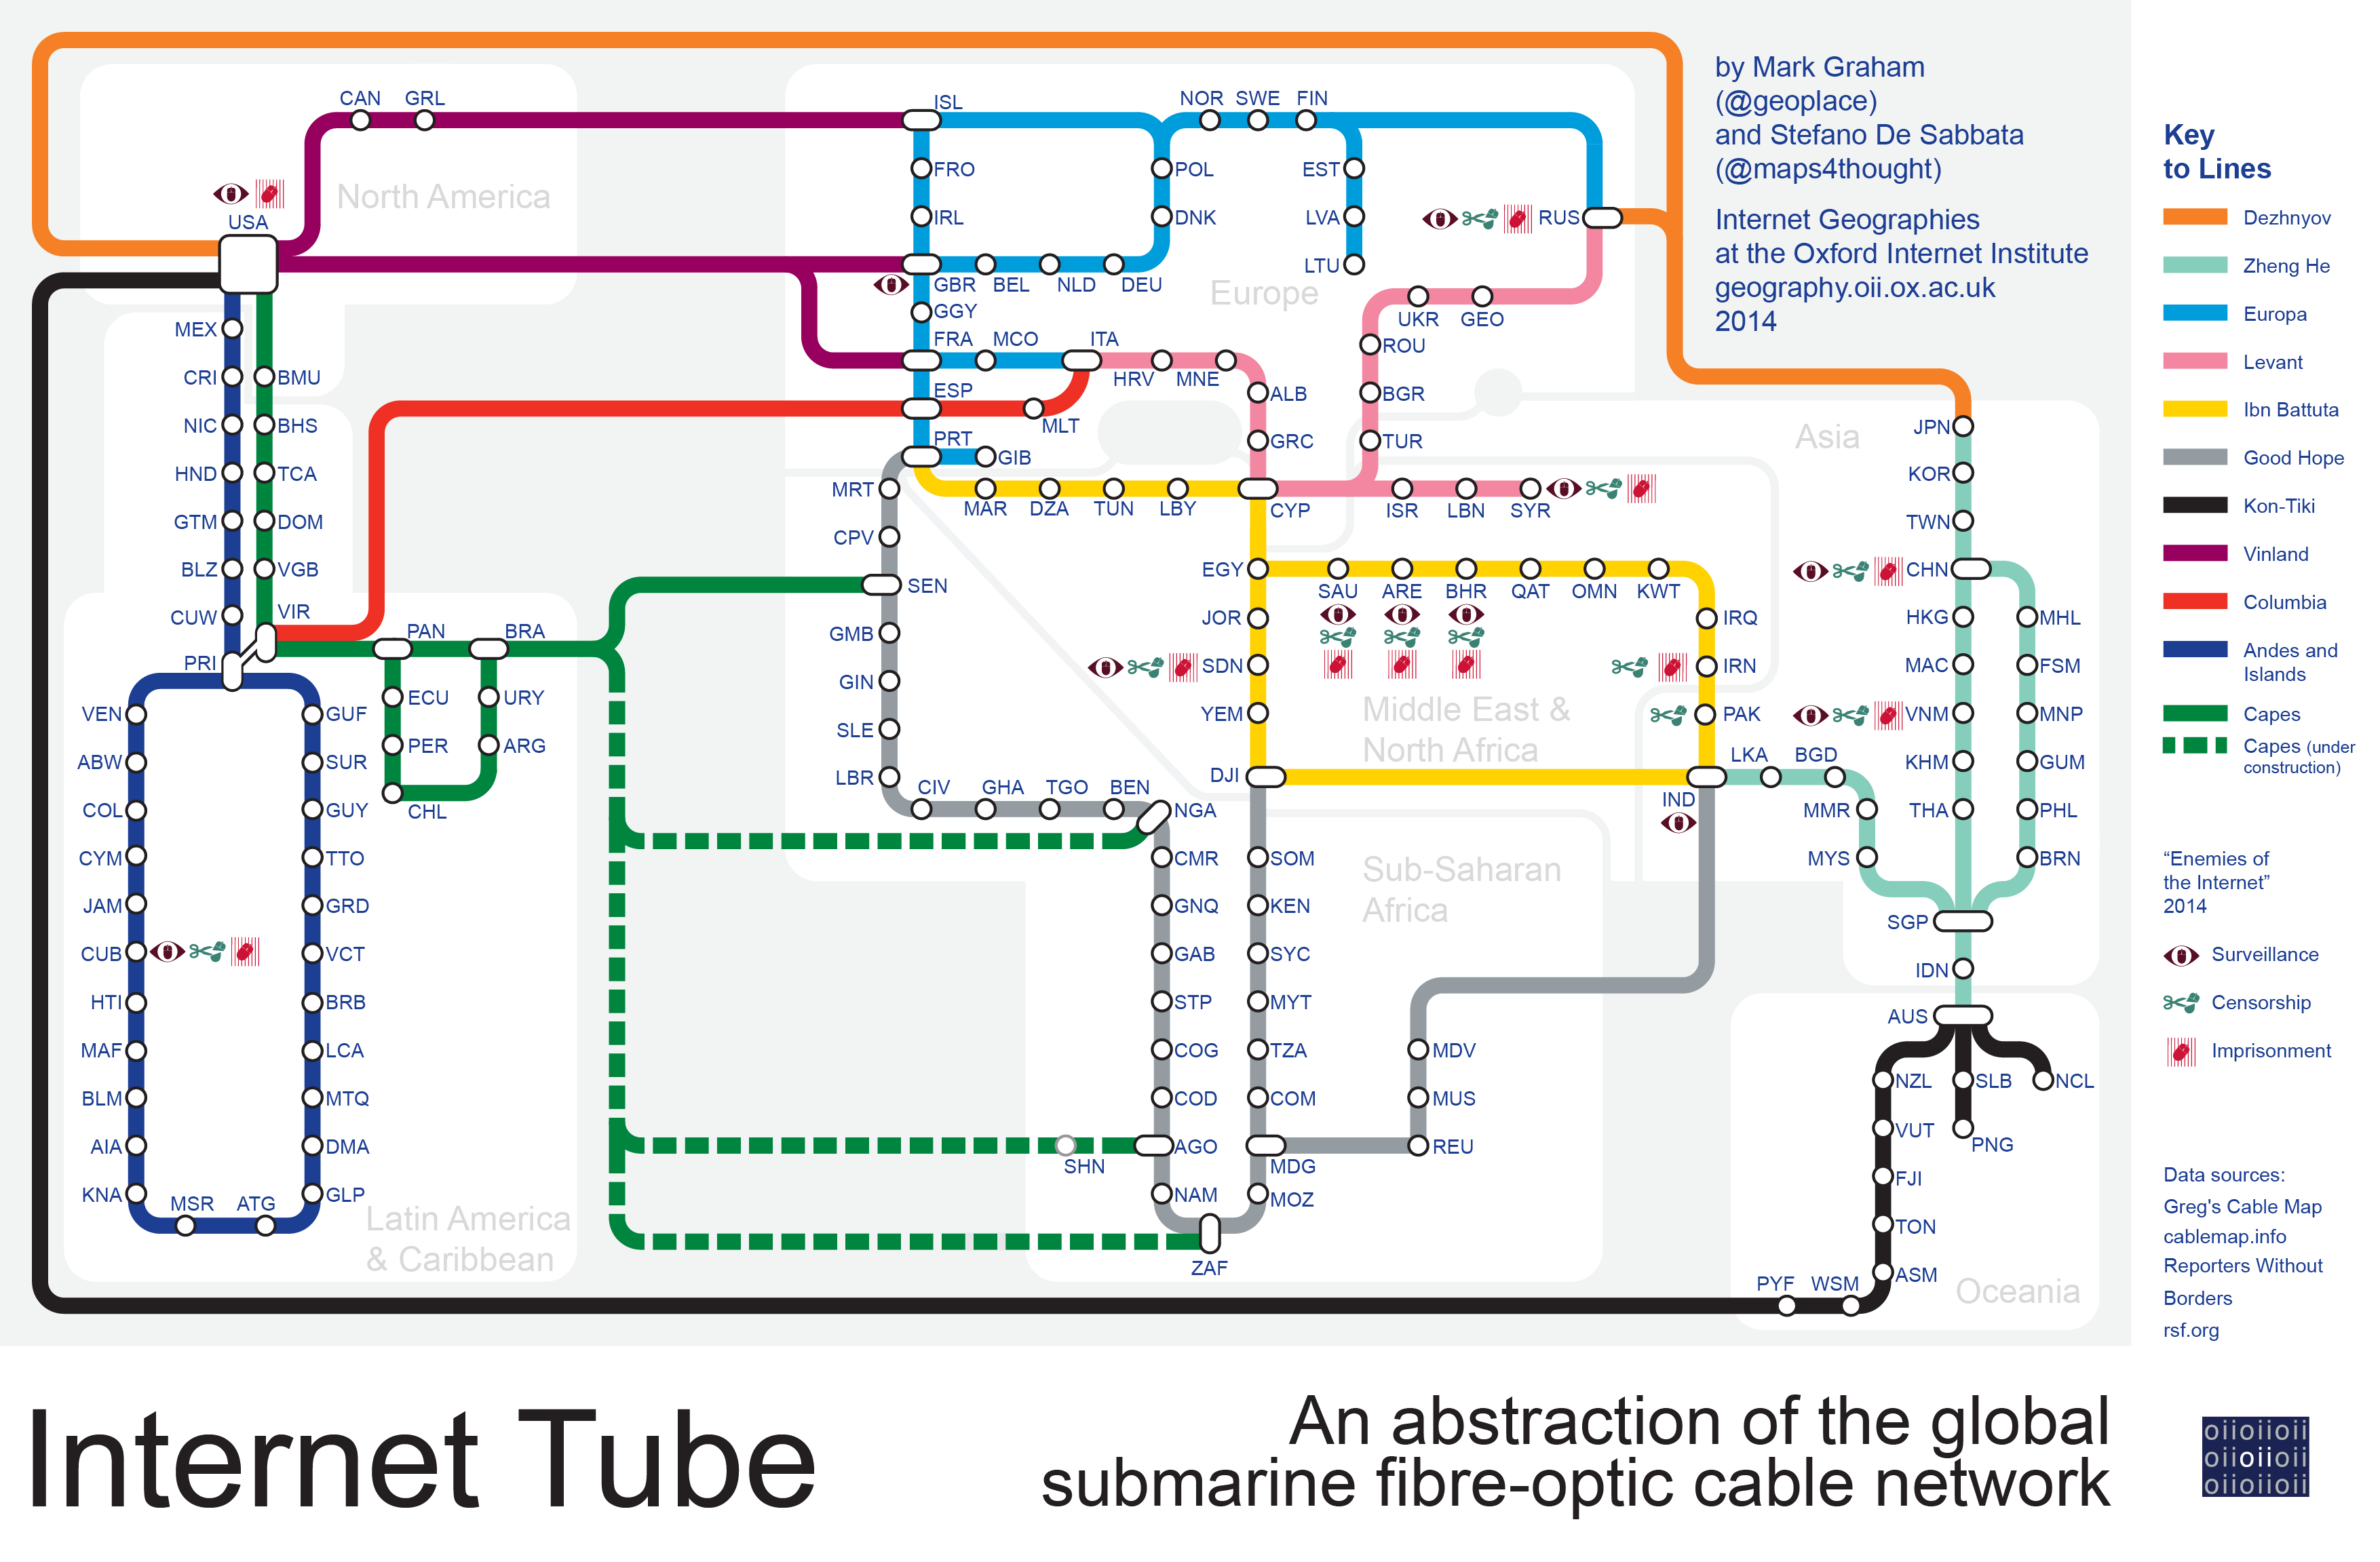 Abstraction of Global Submarine Fibre-optic Cable Network